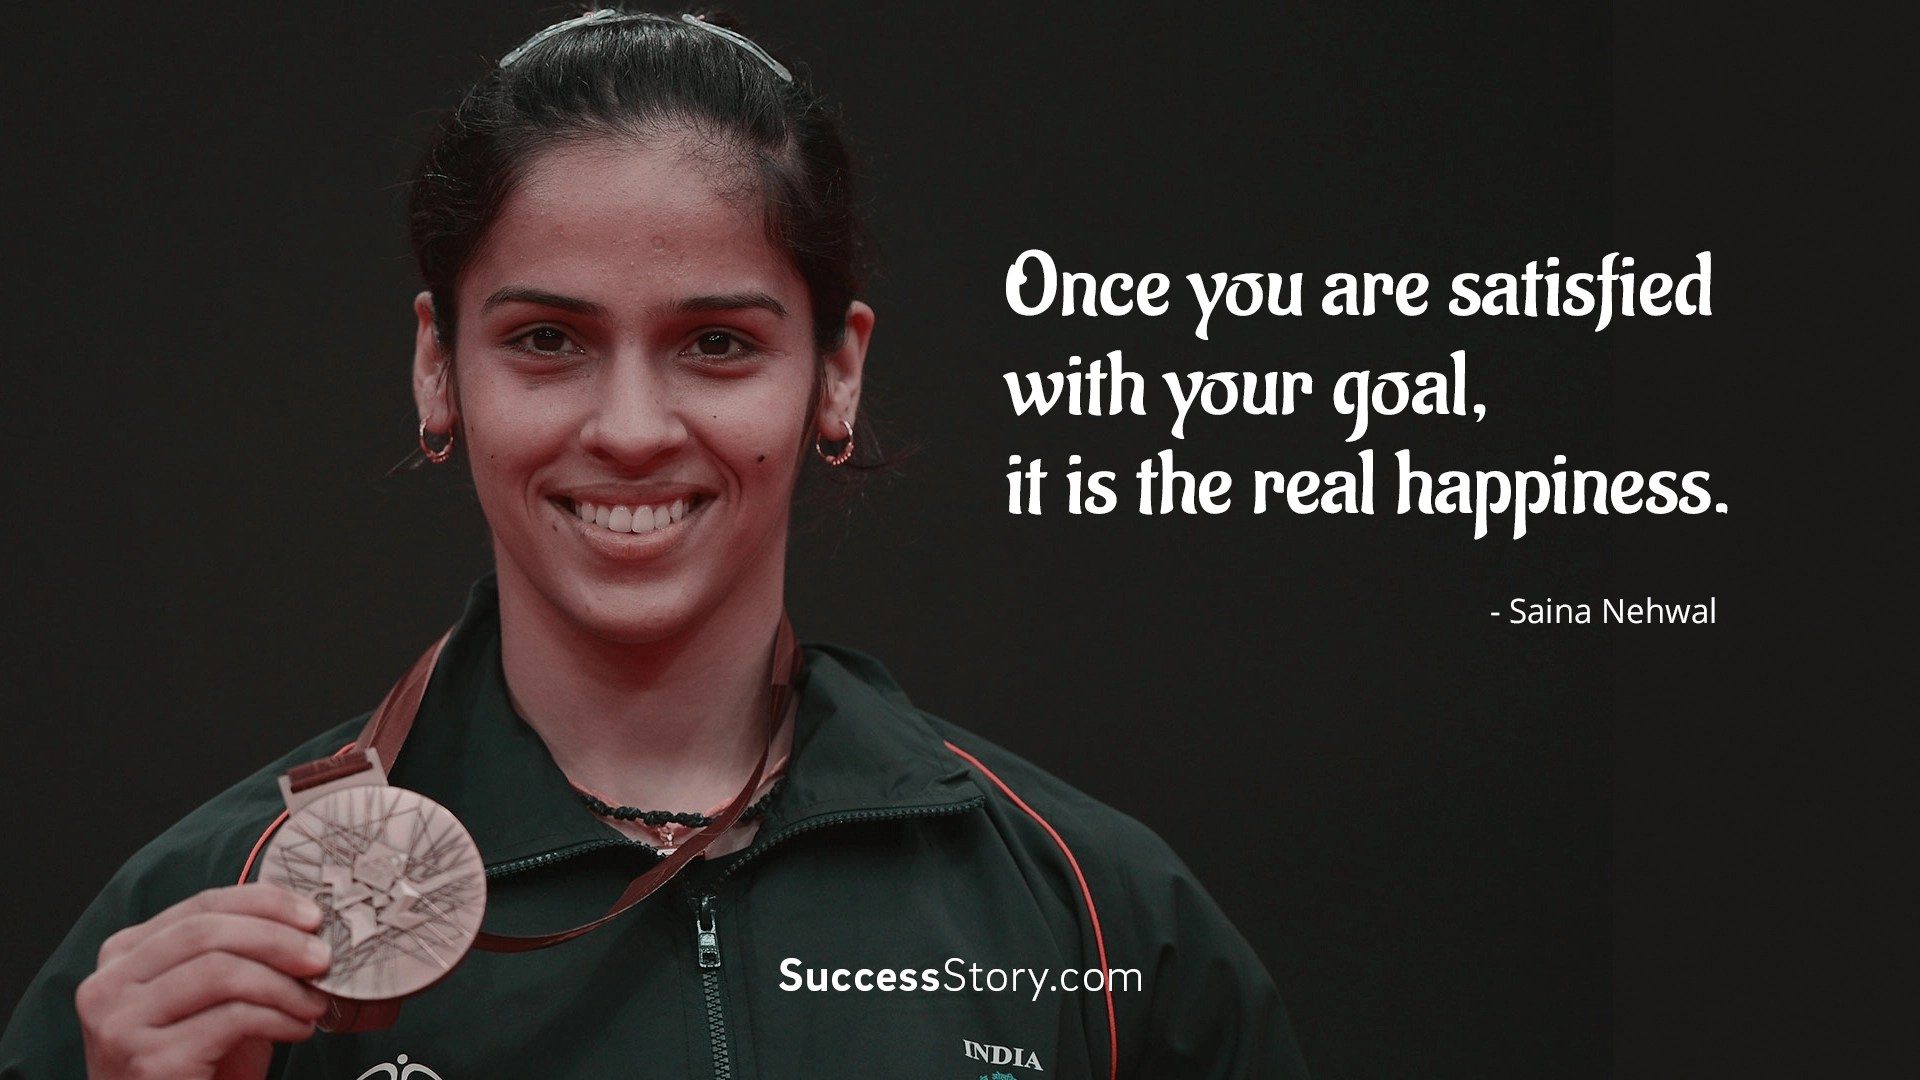 Best Indian Girl Wallpaper 5 Famous Saina Nehwal Quotes Inspirational Quotes